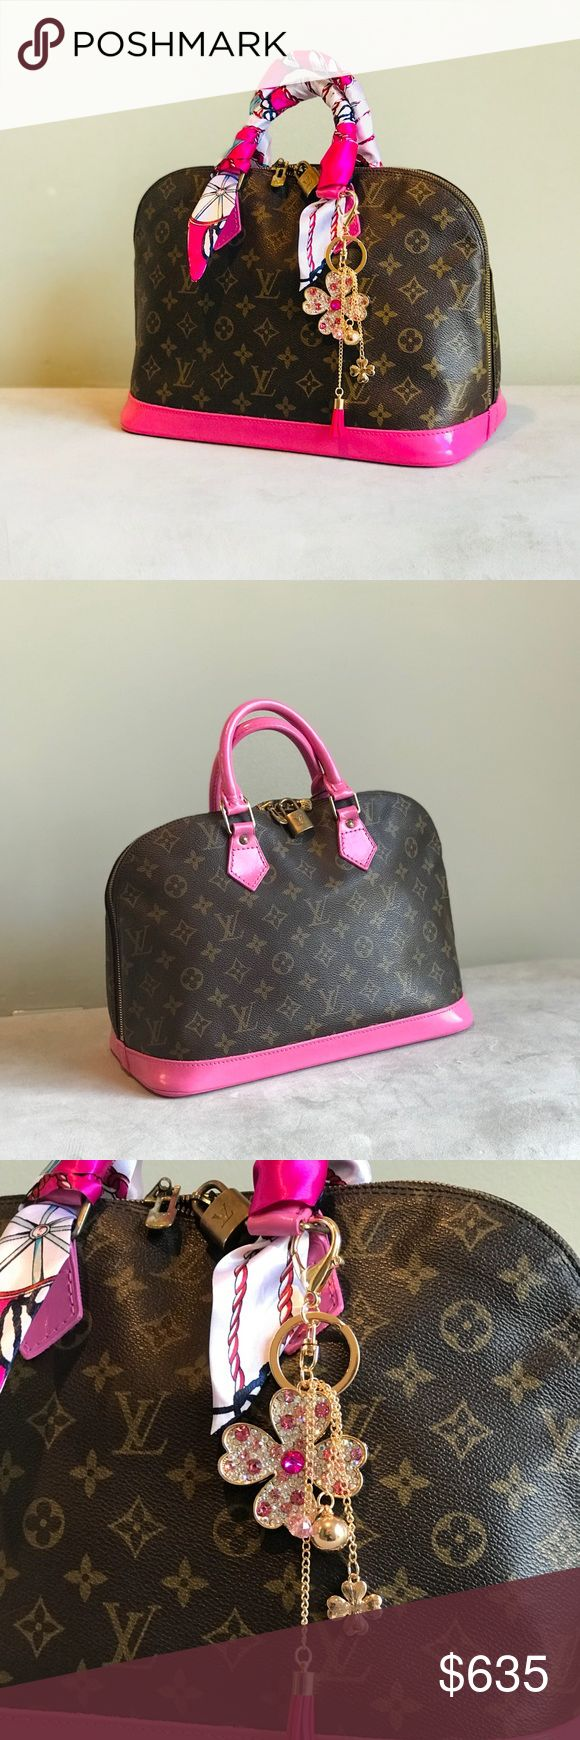 Authentic Louis Vuitton Alma Hot Pink Spring is here! 💐 Gorgeous Louis Vuitton . Free certificate of authentication from Poshmark! Authentication Date Code BA0935.This is preloved vintage bag. Professionally Hand-Painted in hot pink acrylic paint and sealed for protection. Slightly tarnished hardware but slides well.Zipper works great.Clean monogram!.Clean interior.  Lock is missing a key. Overall, in good condition FREE Twills and unbranded charm. Louis Vuitton Bags Satchels